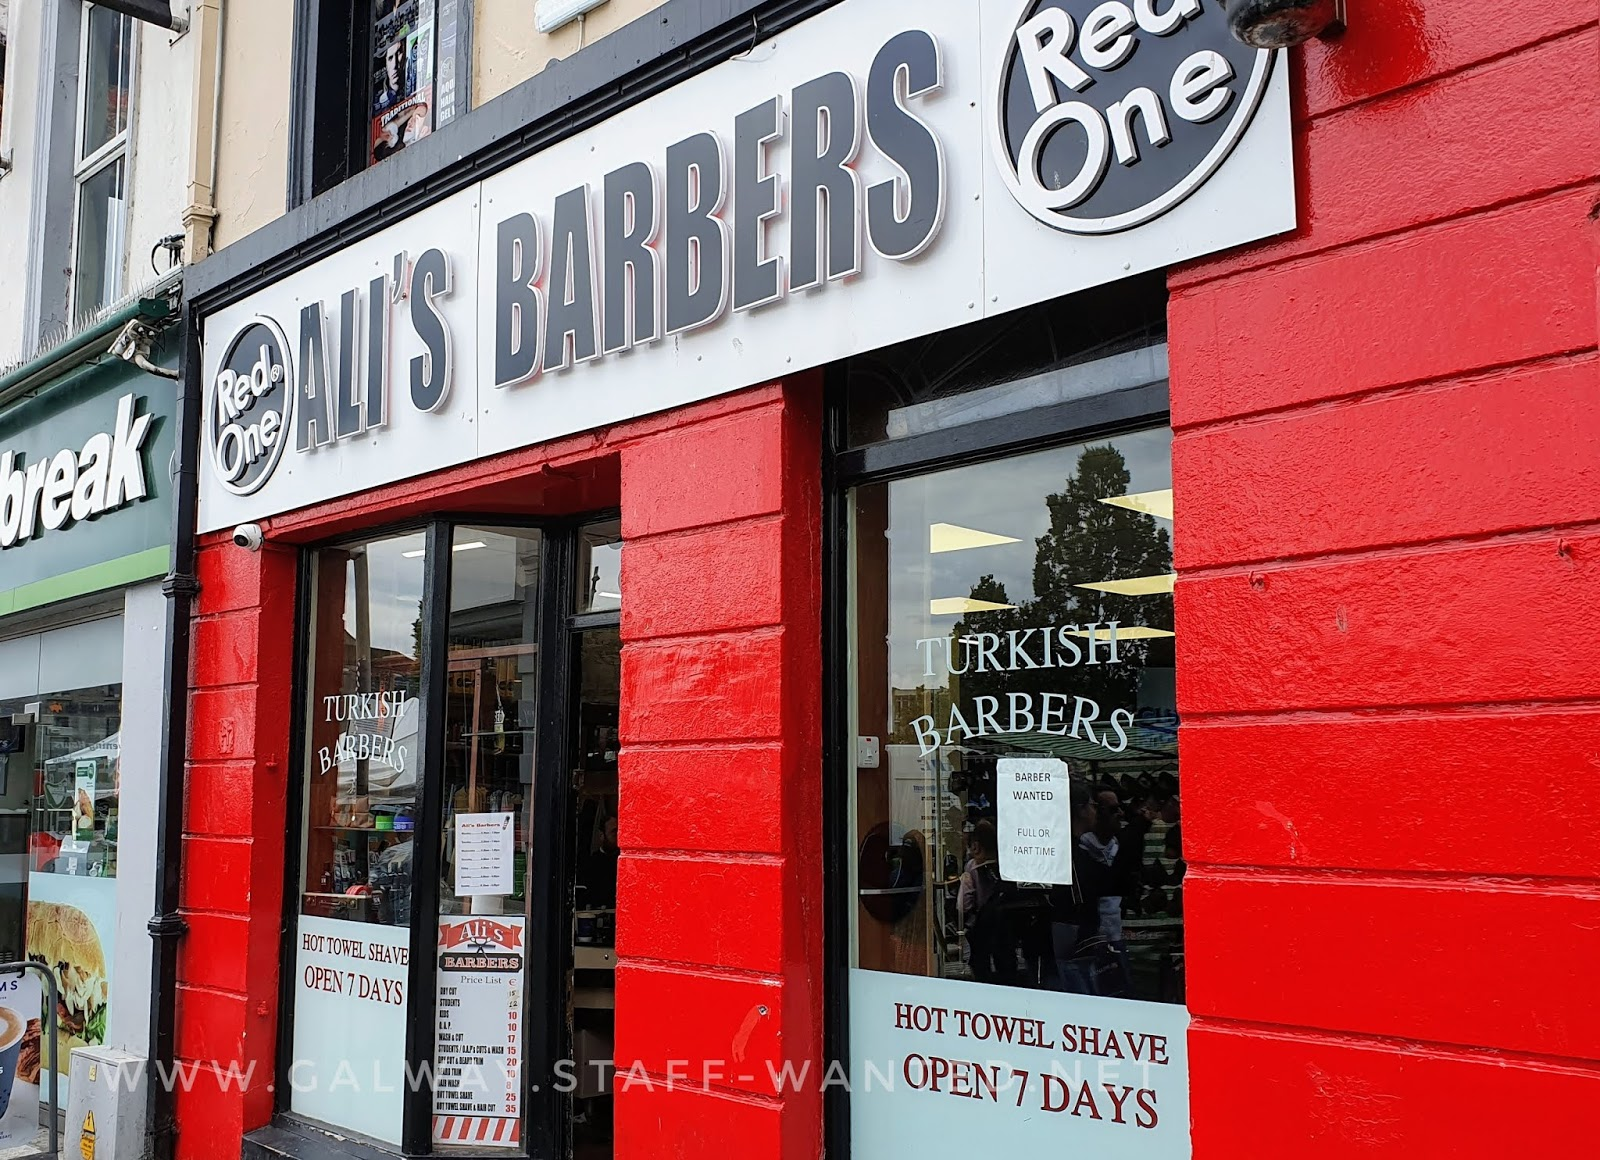 Shopfront of Turkish barber open seven days offering how towel shaves in the middle of Galway city